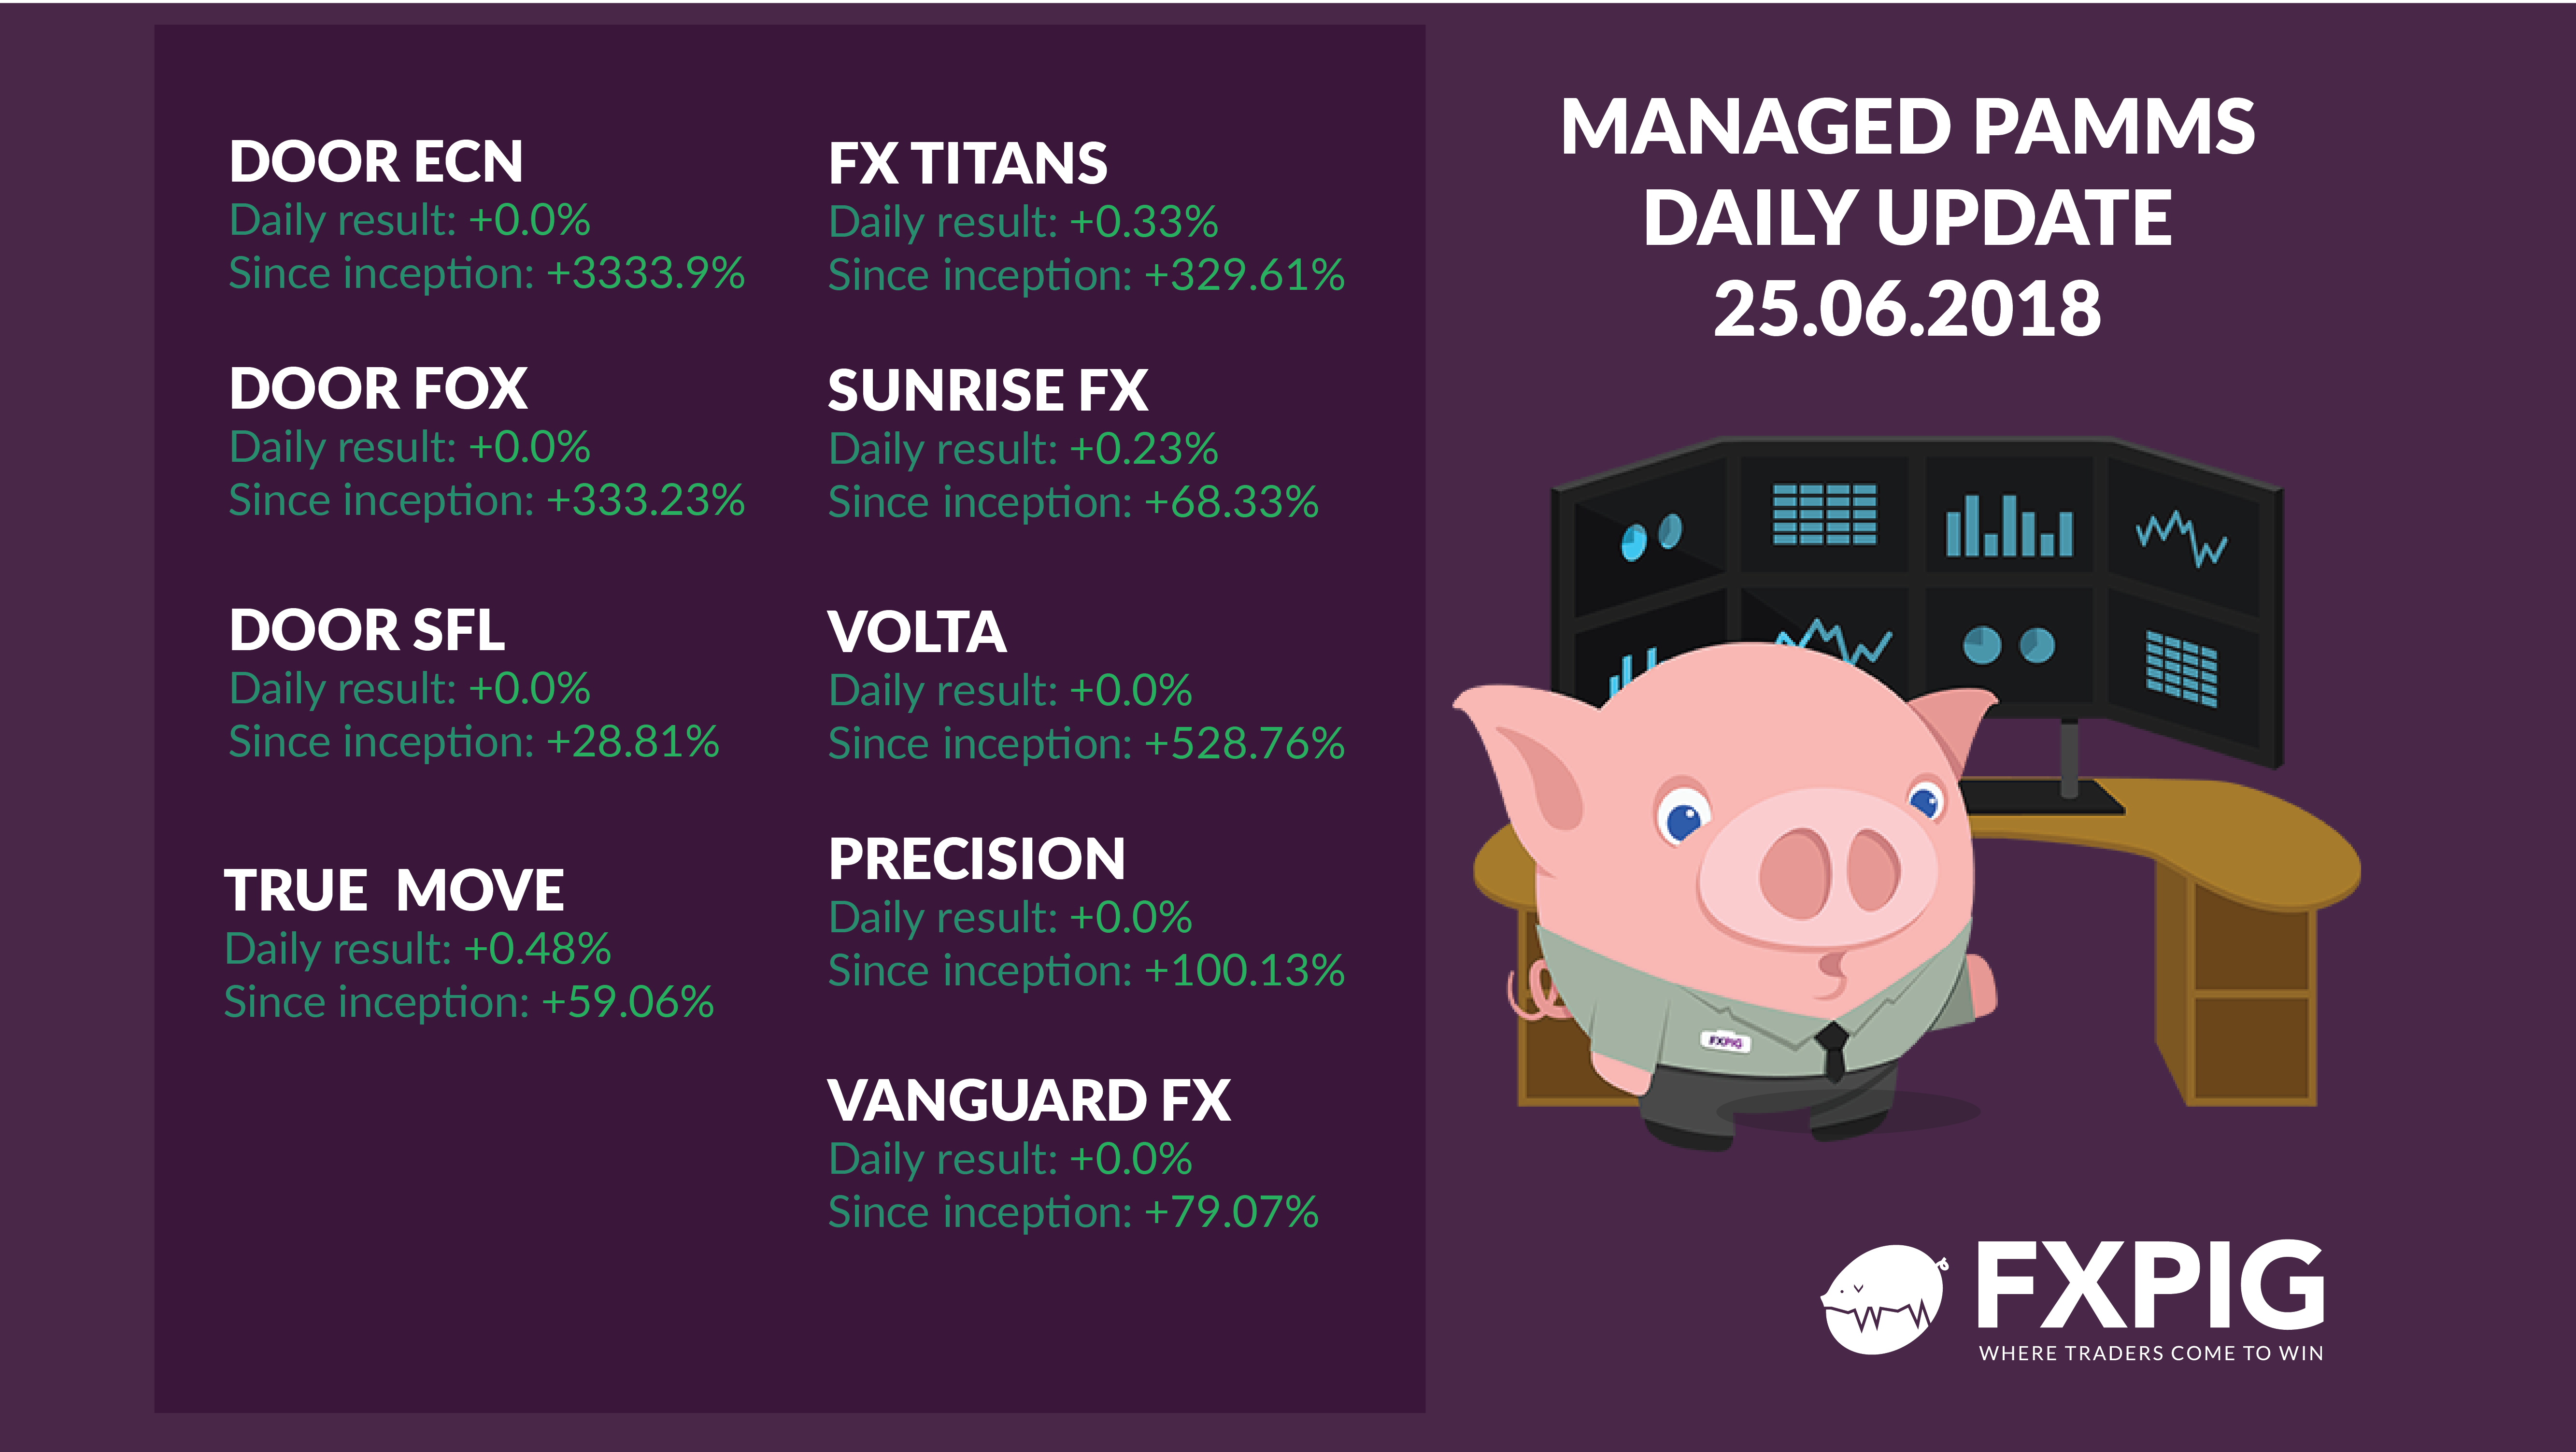 FOREX_Pamms-daily-results-25-06-2018_FXPIG